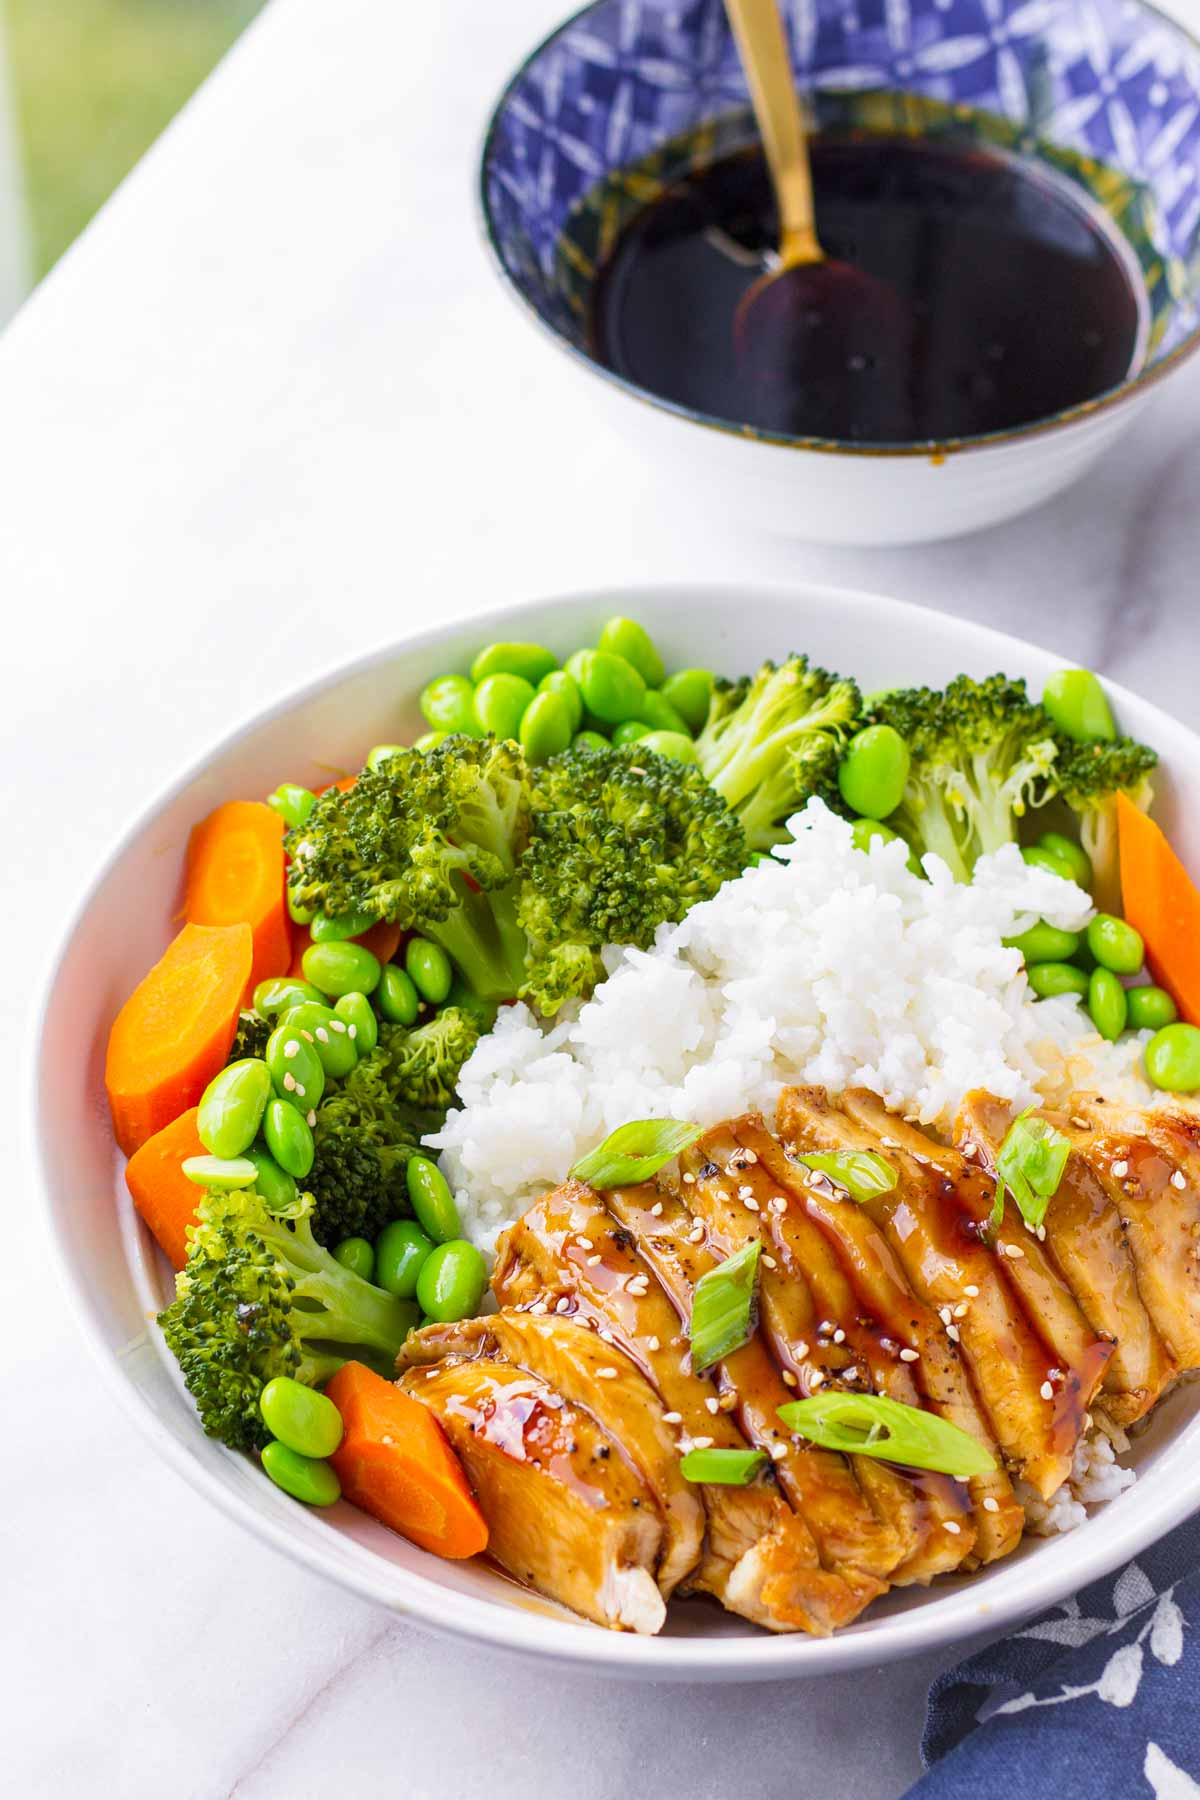 grain bowl with sliced chicken, edamame, broccoli, carrots and sauce